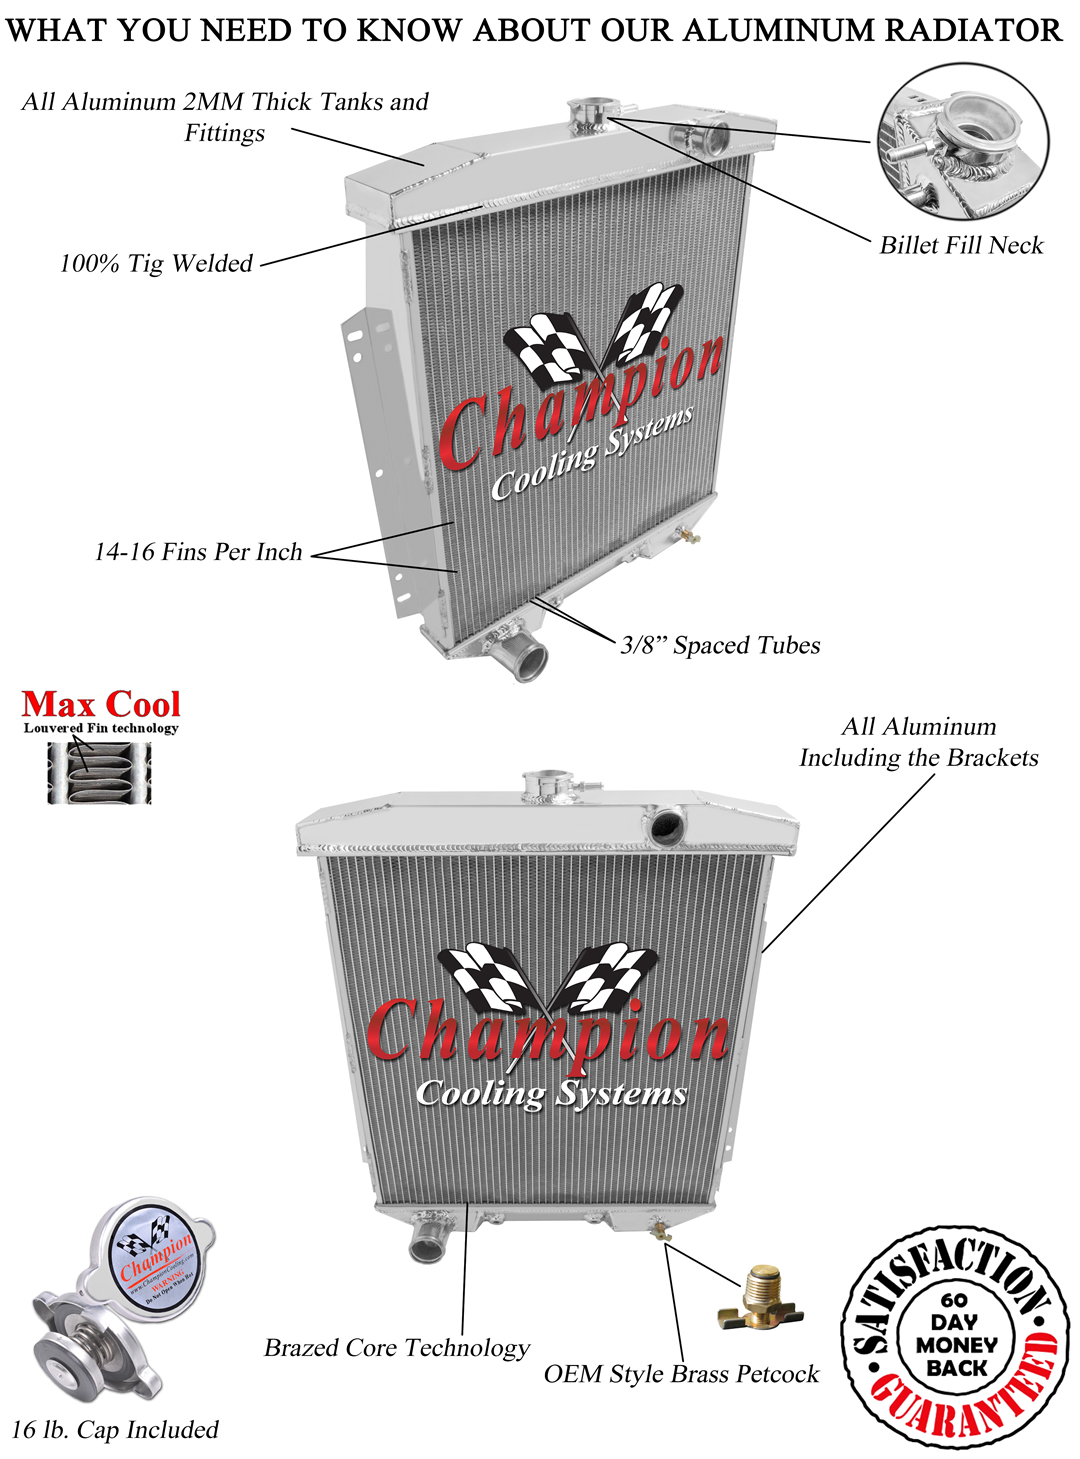 https://www.championcooling.com/photos/Photos%20White/Without%20Fans/5456hd/5456HD_white_Diagram_Champion.jpg